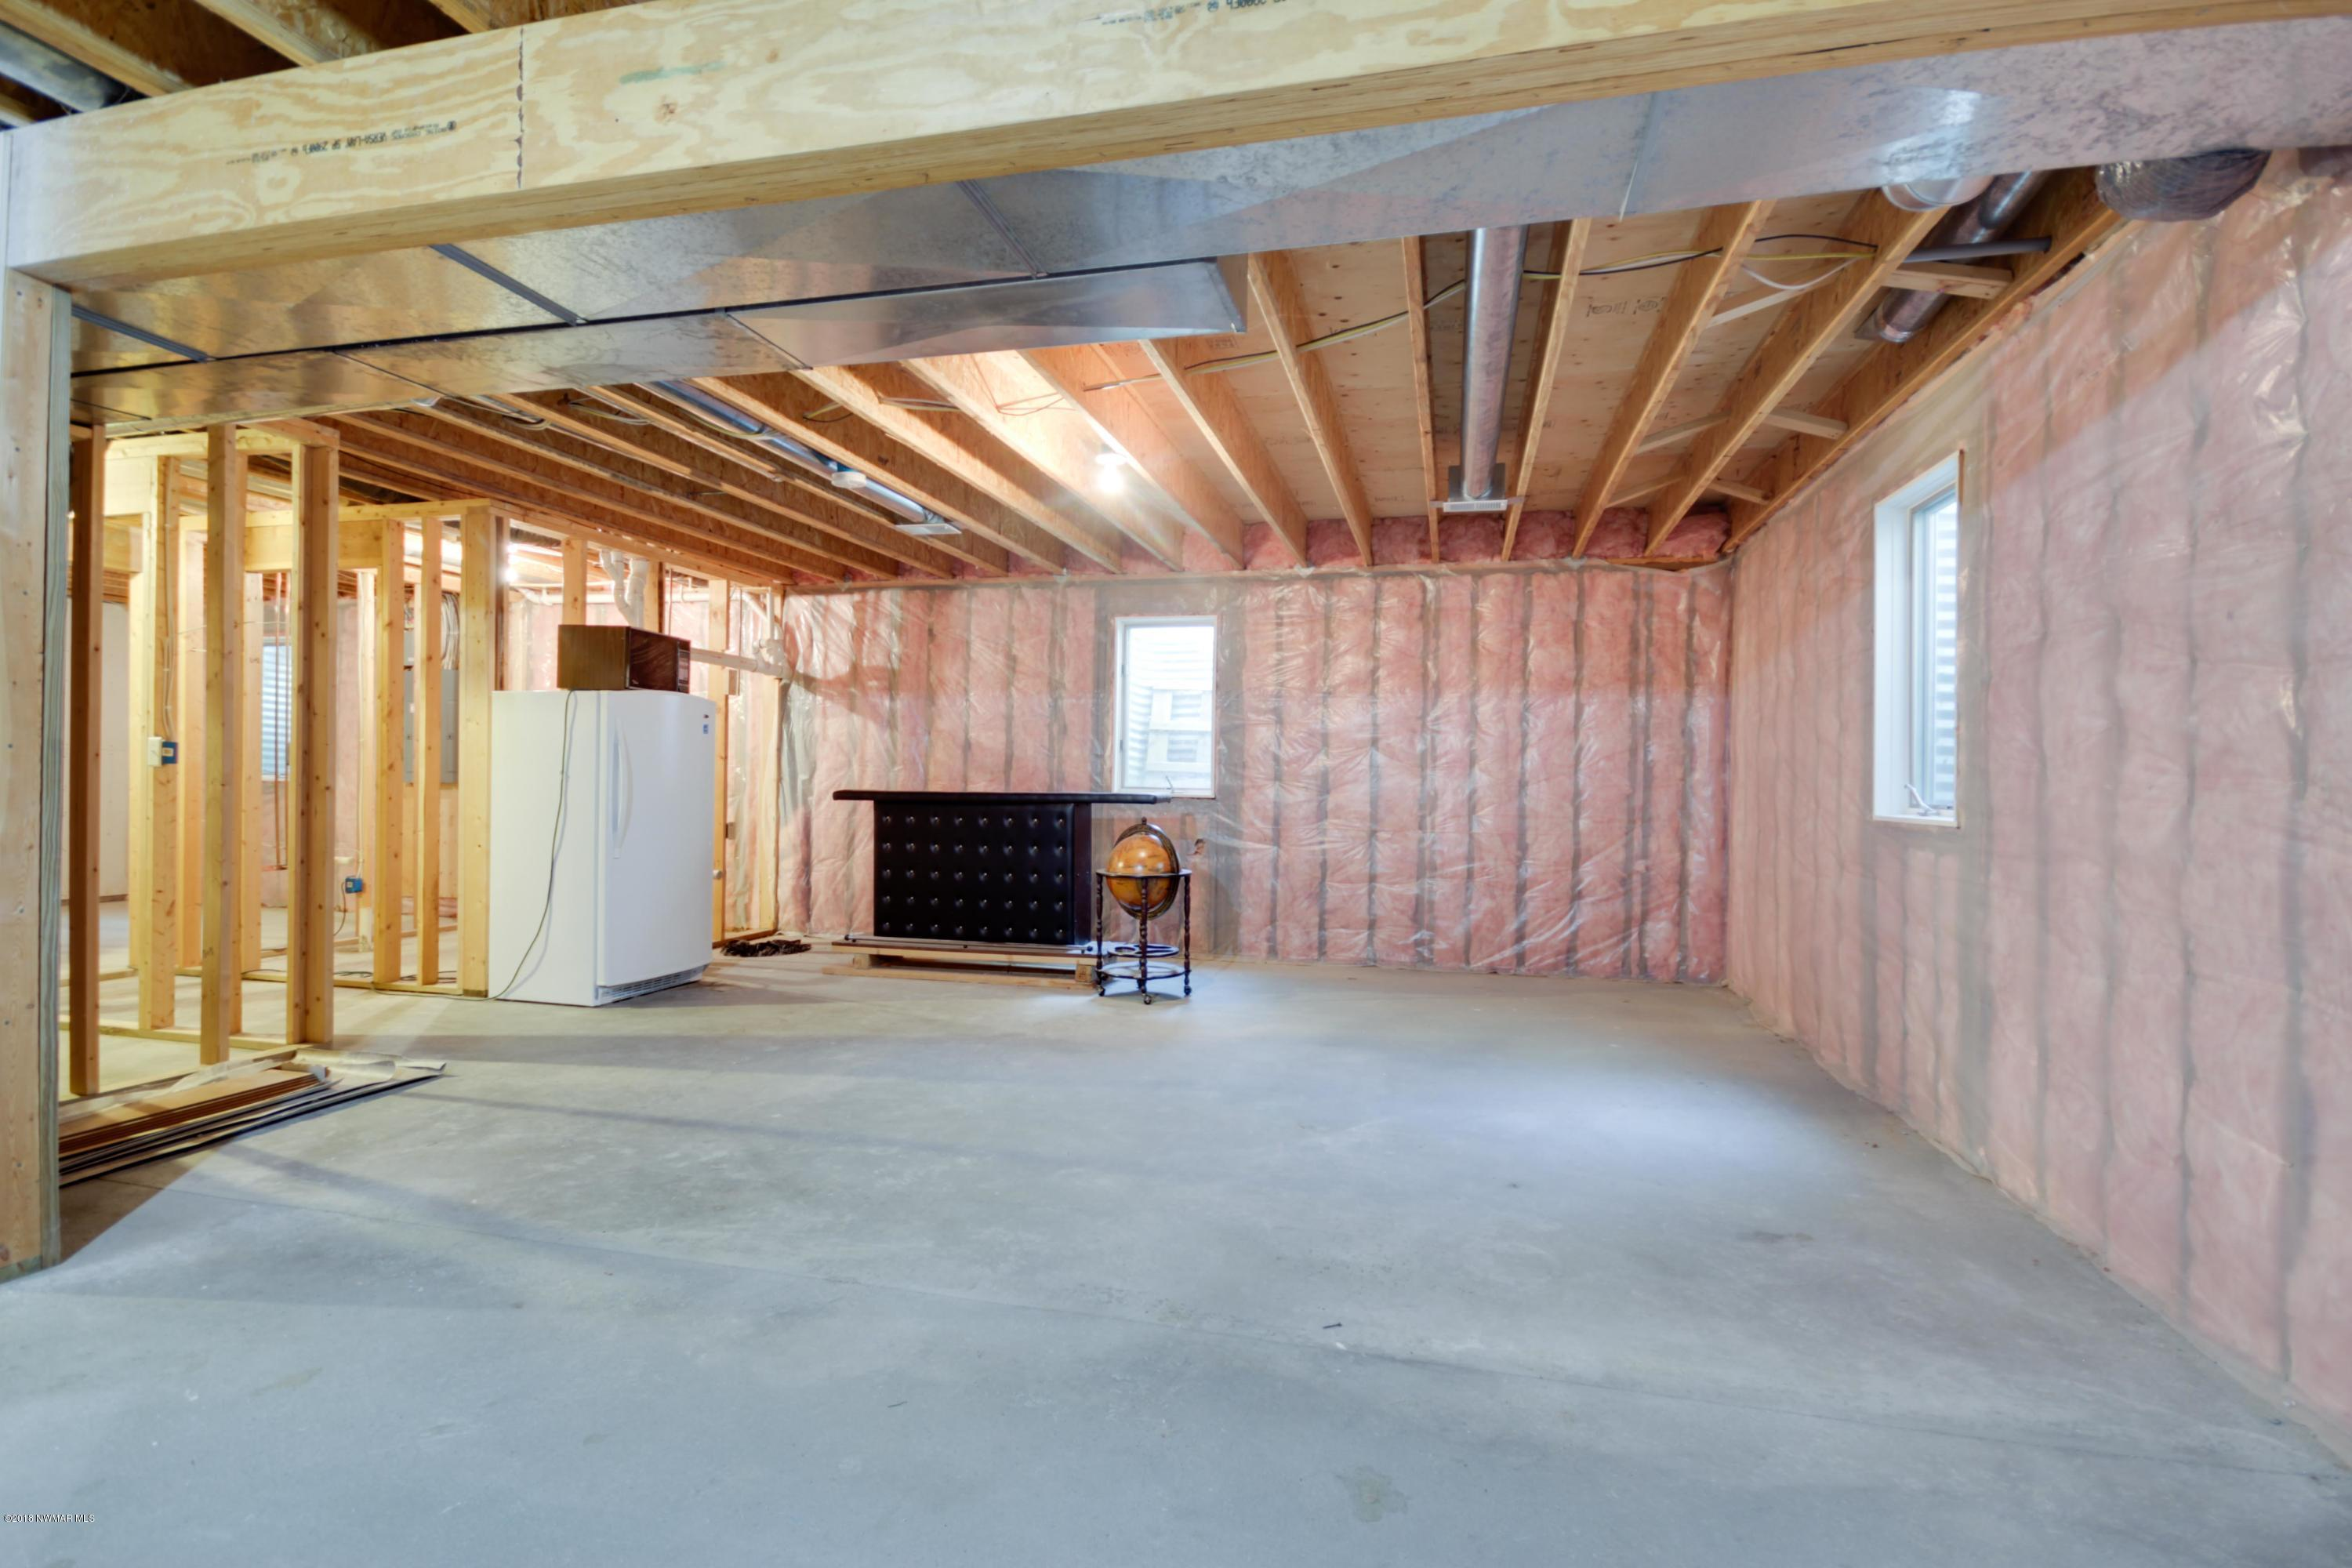 Unfinished Space in Basement